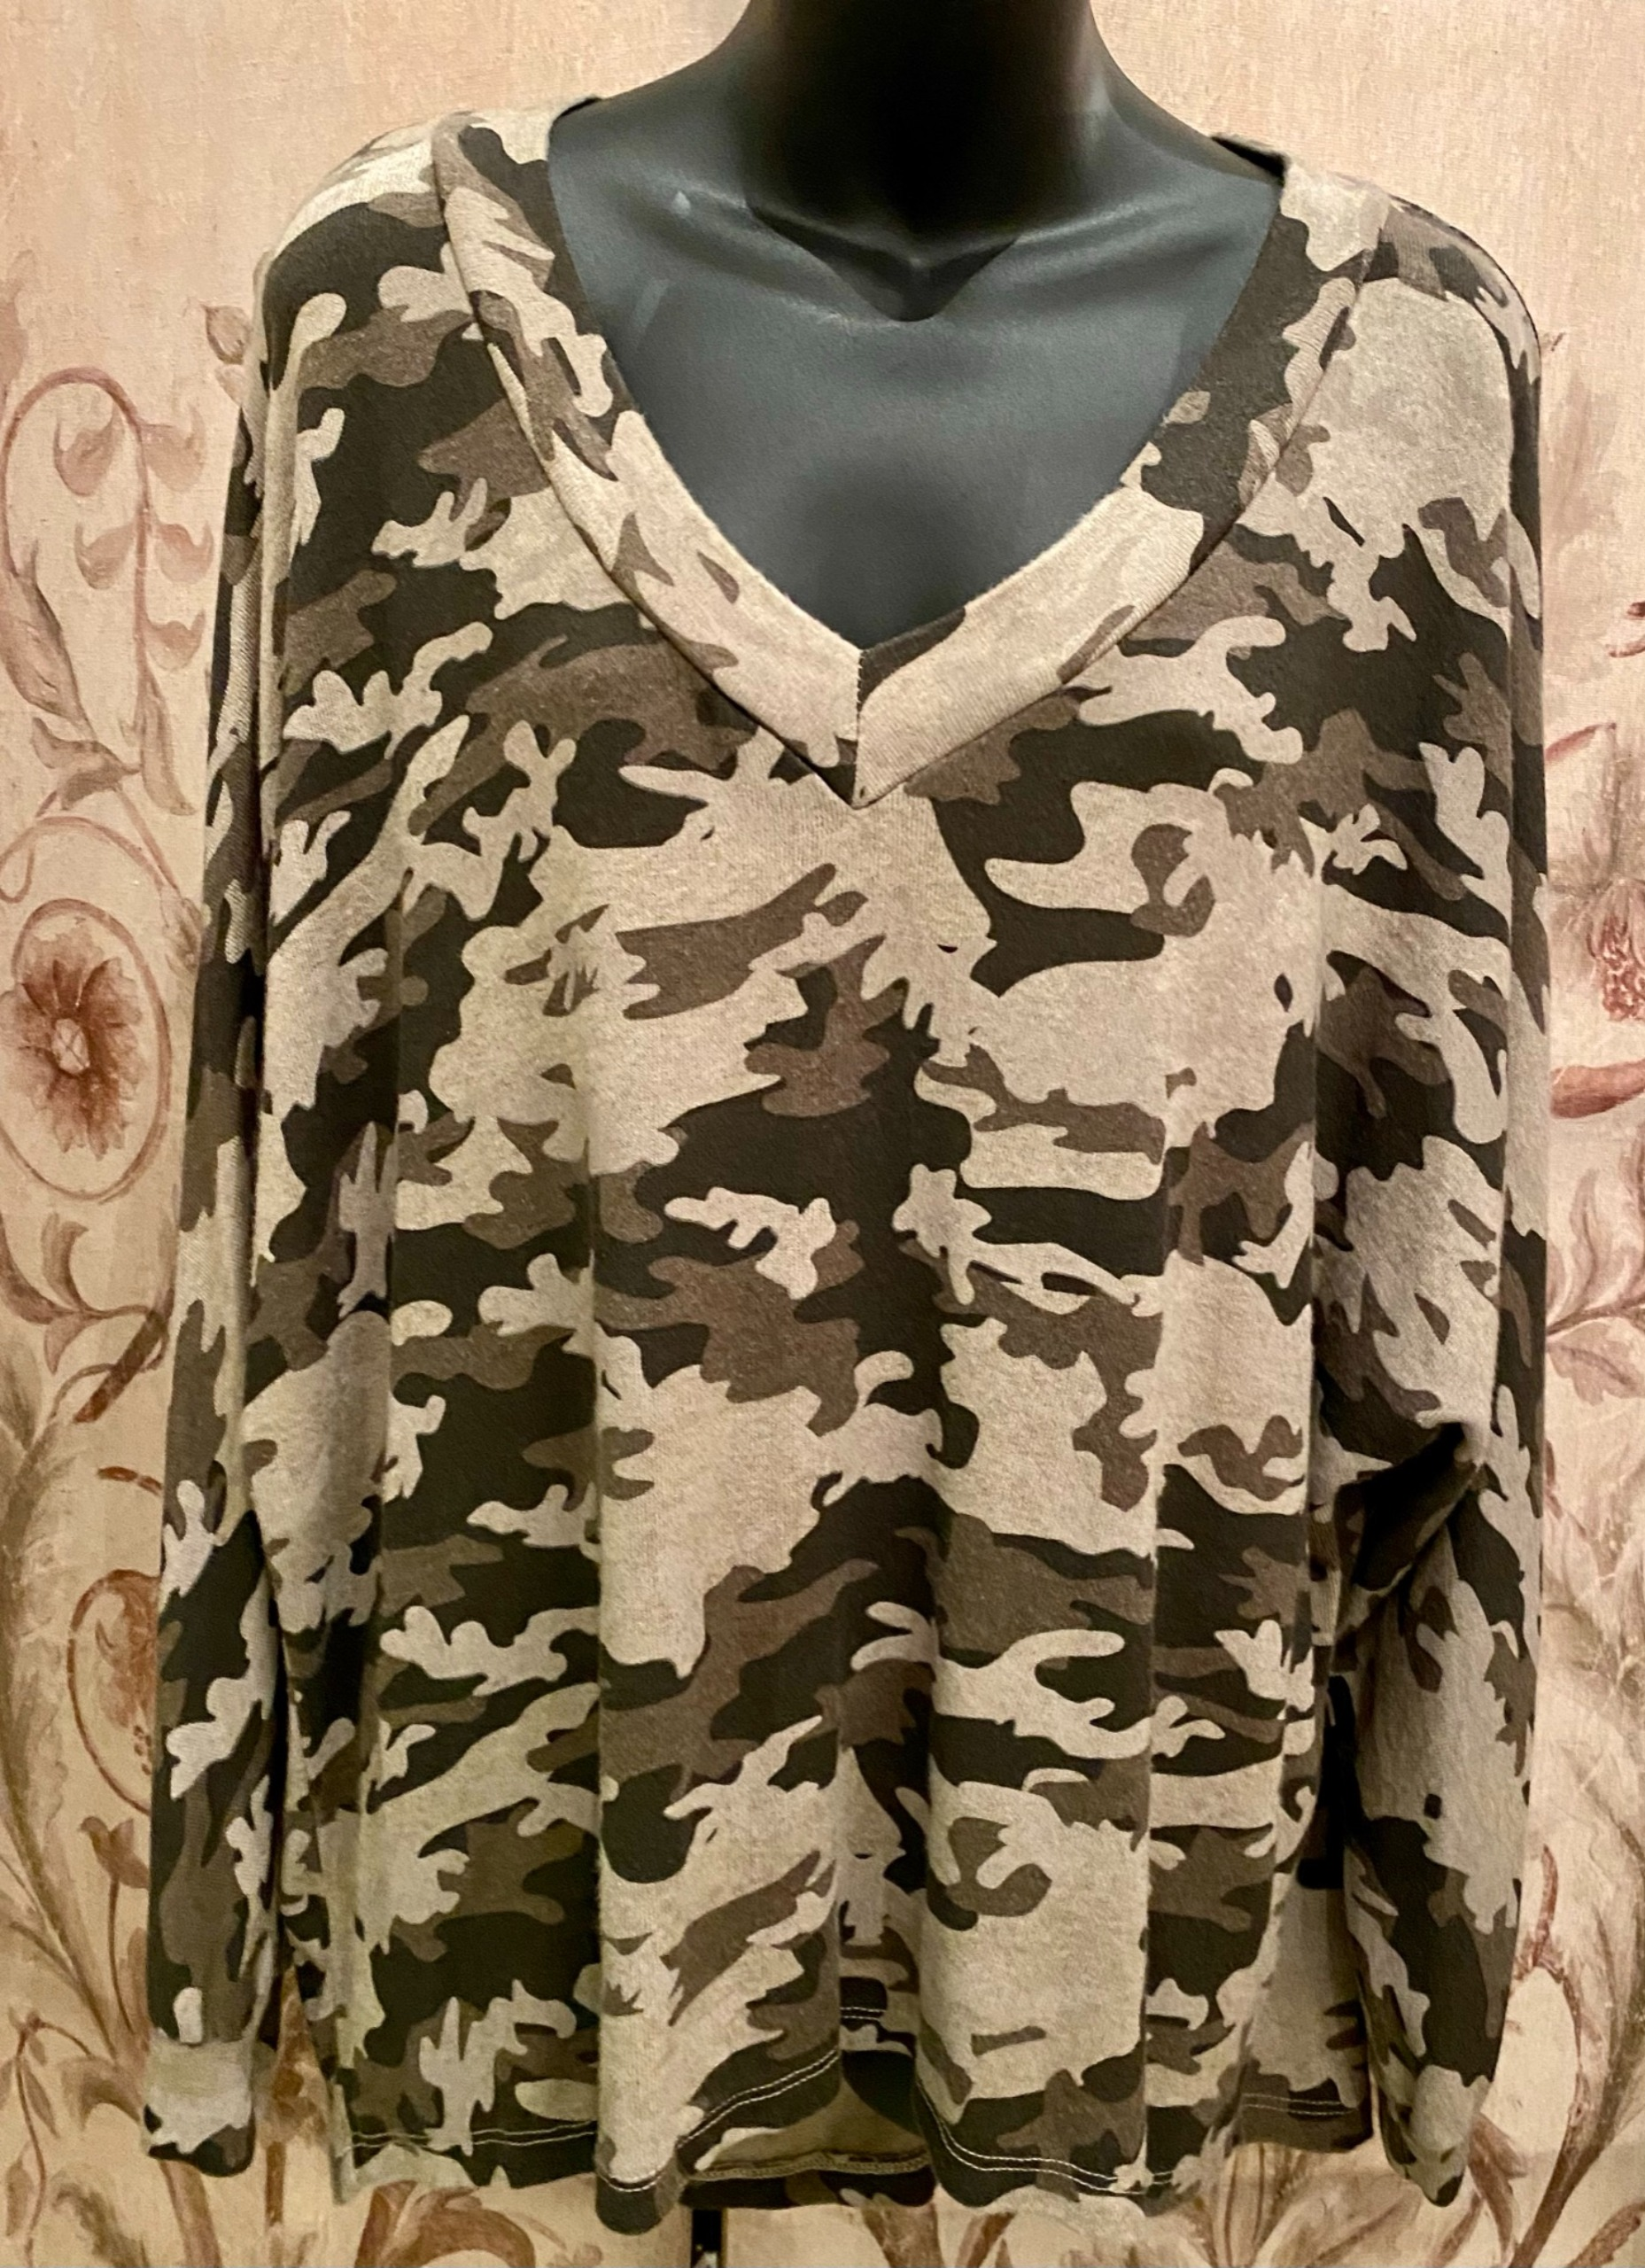 Fine knit v neck batwing camo top